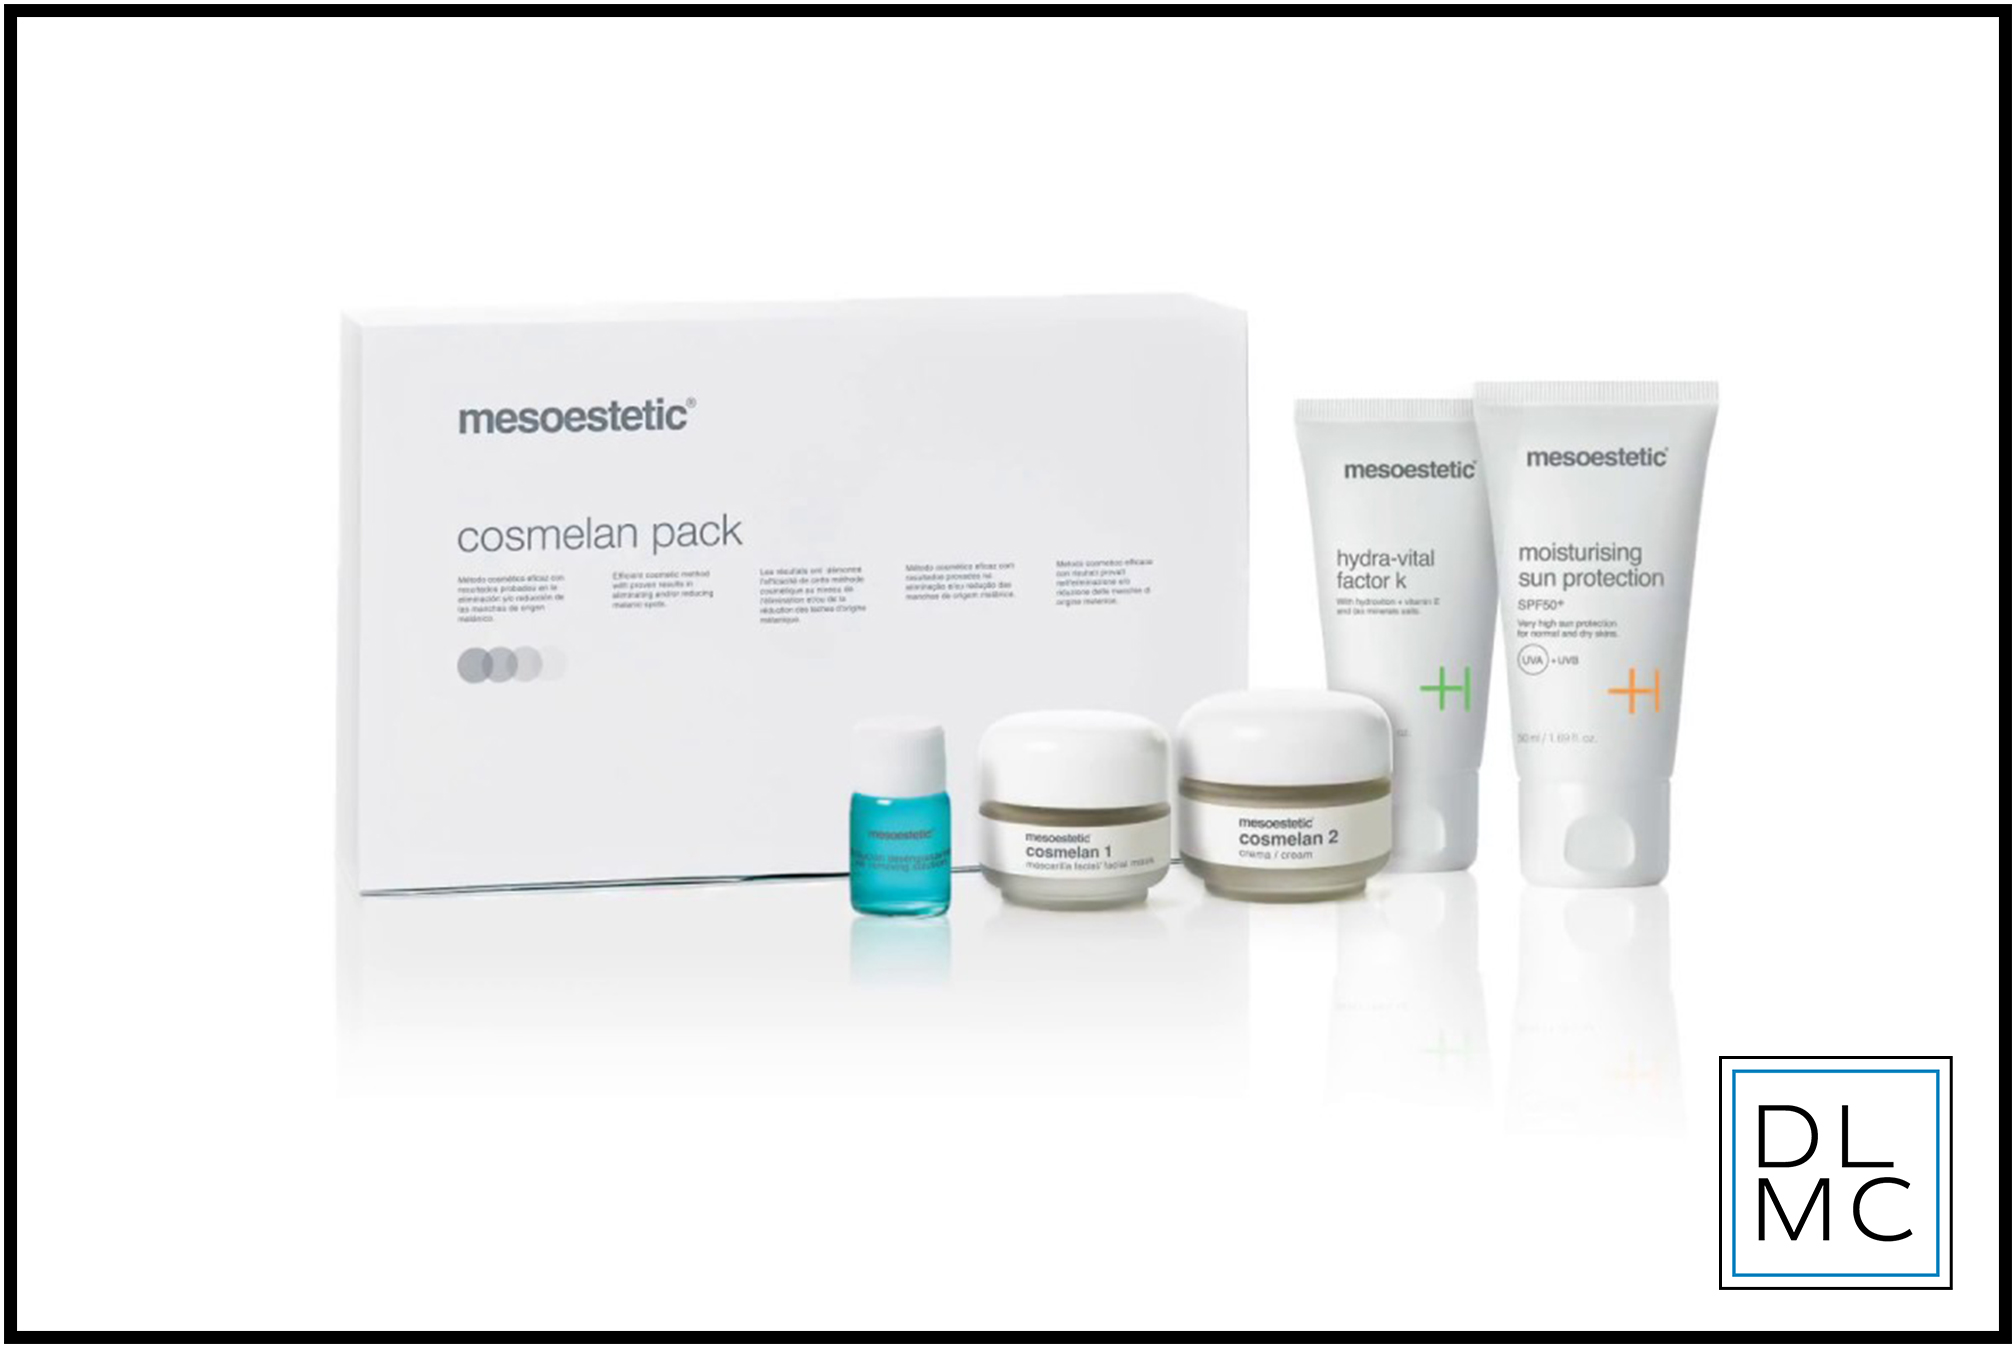 Cosmelan - Cosmelan is a deep, exfoliating peel that improves texture and pigmentation. It's applied in a physician's office and left on the skin for 8-10 hours, then the peeling will occur over 10-15 days.What problems can it help with?• Brightens skin tone and dark spots• Resurfaces skin• Reduces the appearance of hyperpigmentation• Improves the appearance of fine lines and wrinkles